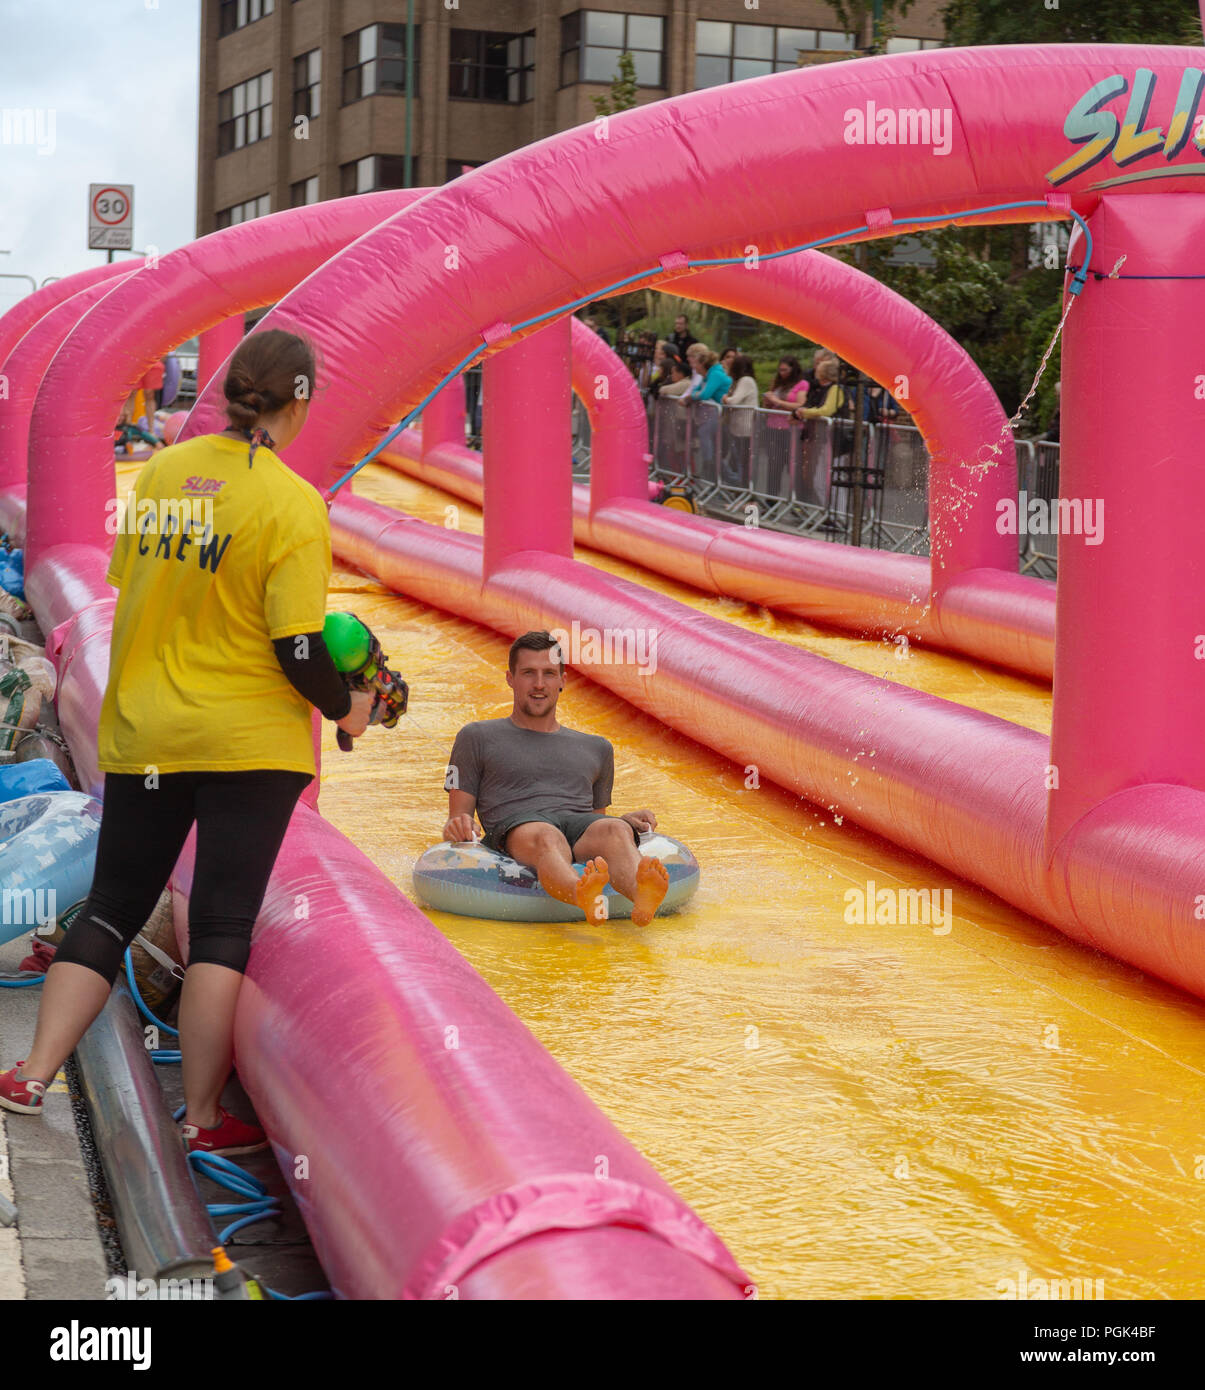 Inflatable Slide Bournemouth: Water Slide Children Stock Photos & Water Slide Children